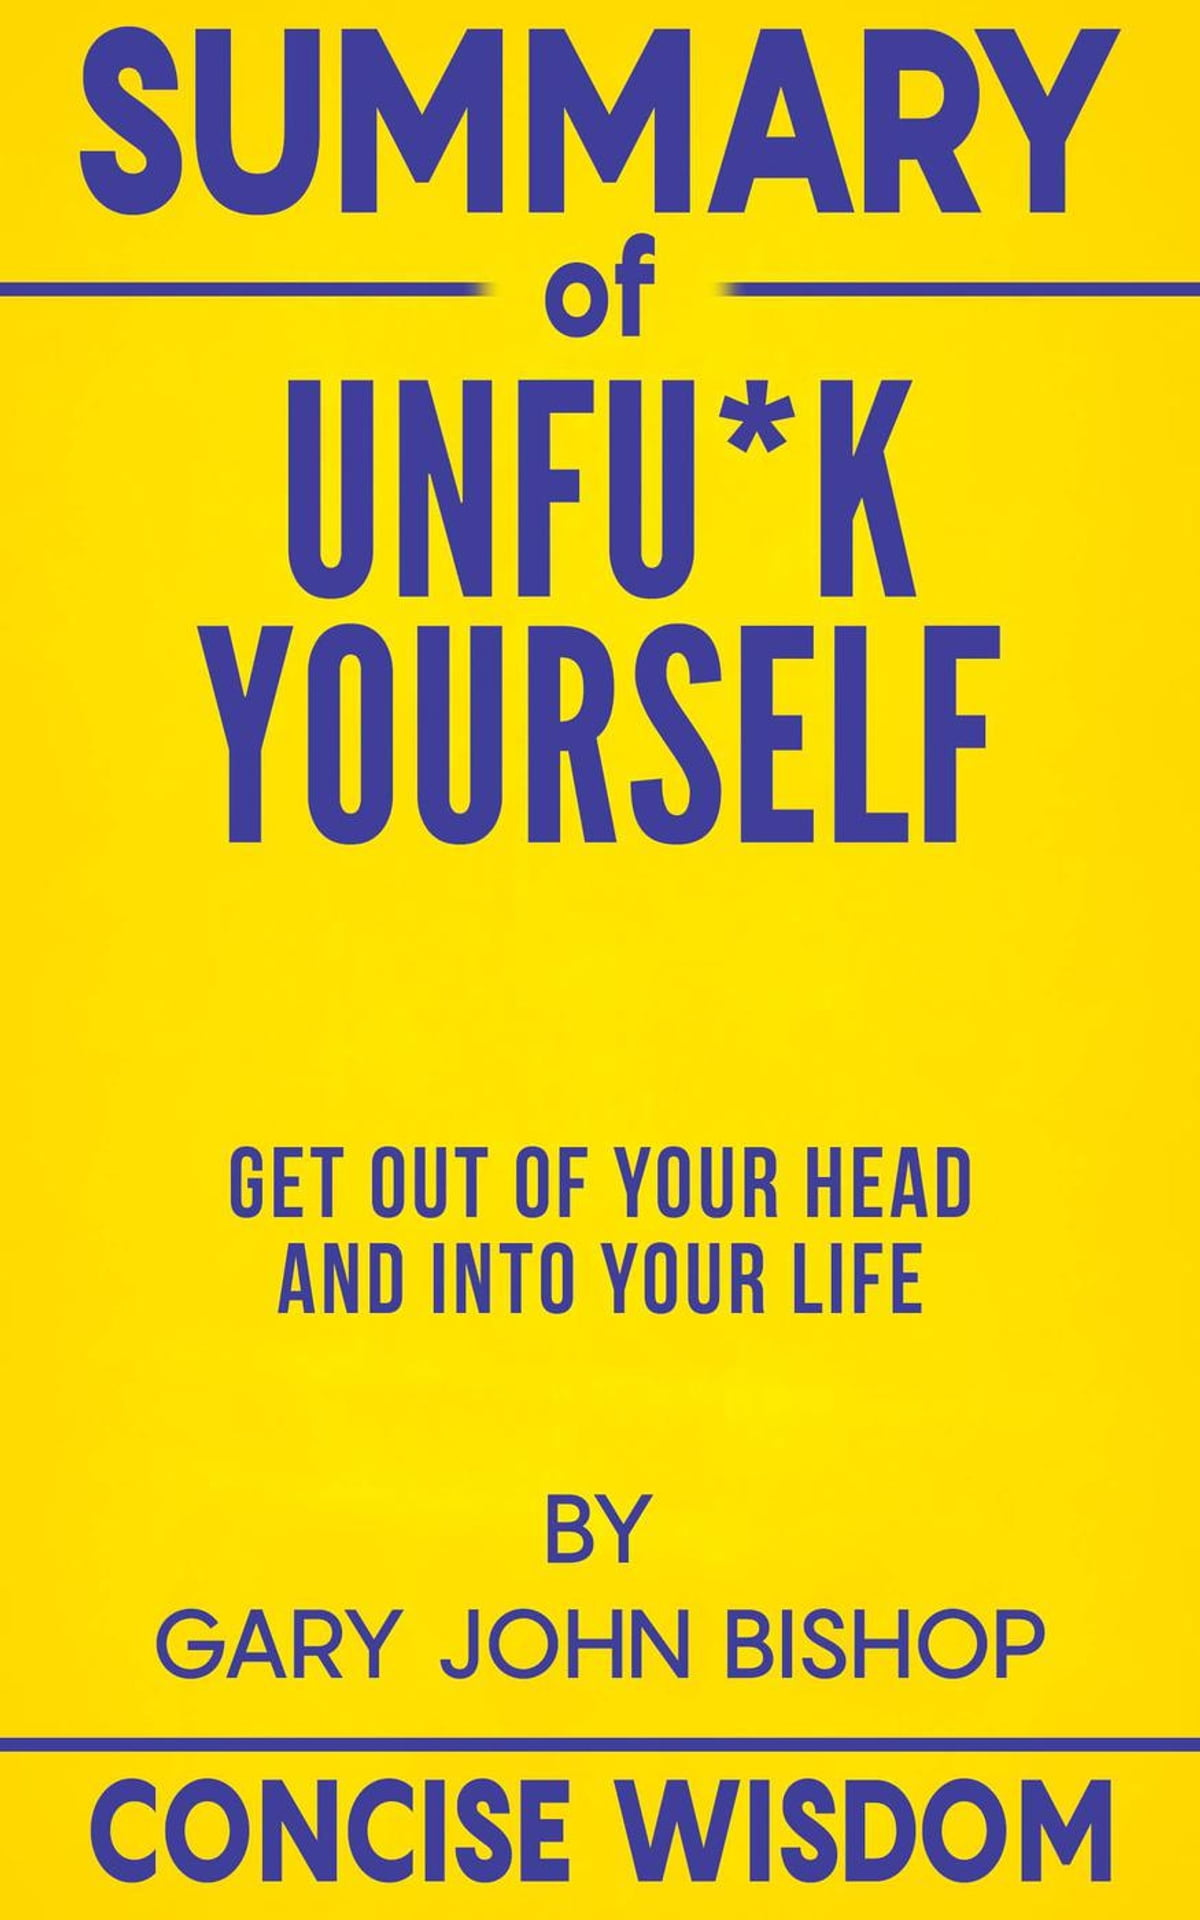 get out of your head and into life